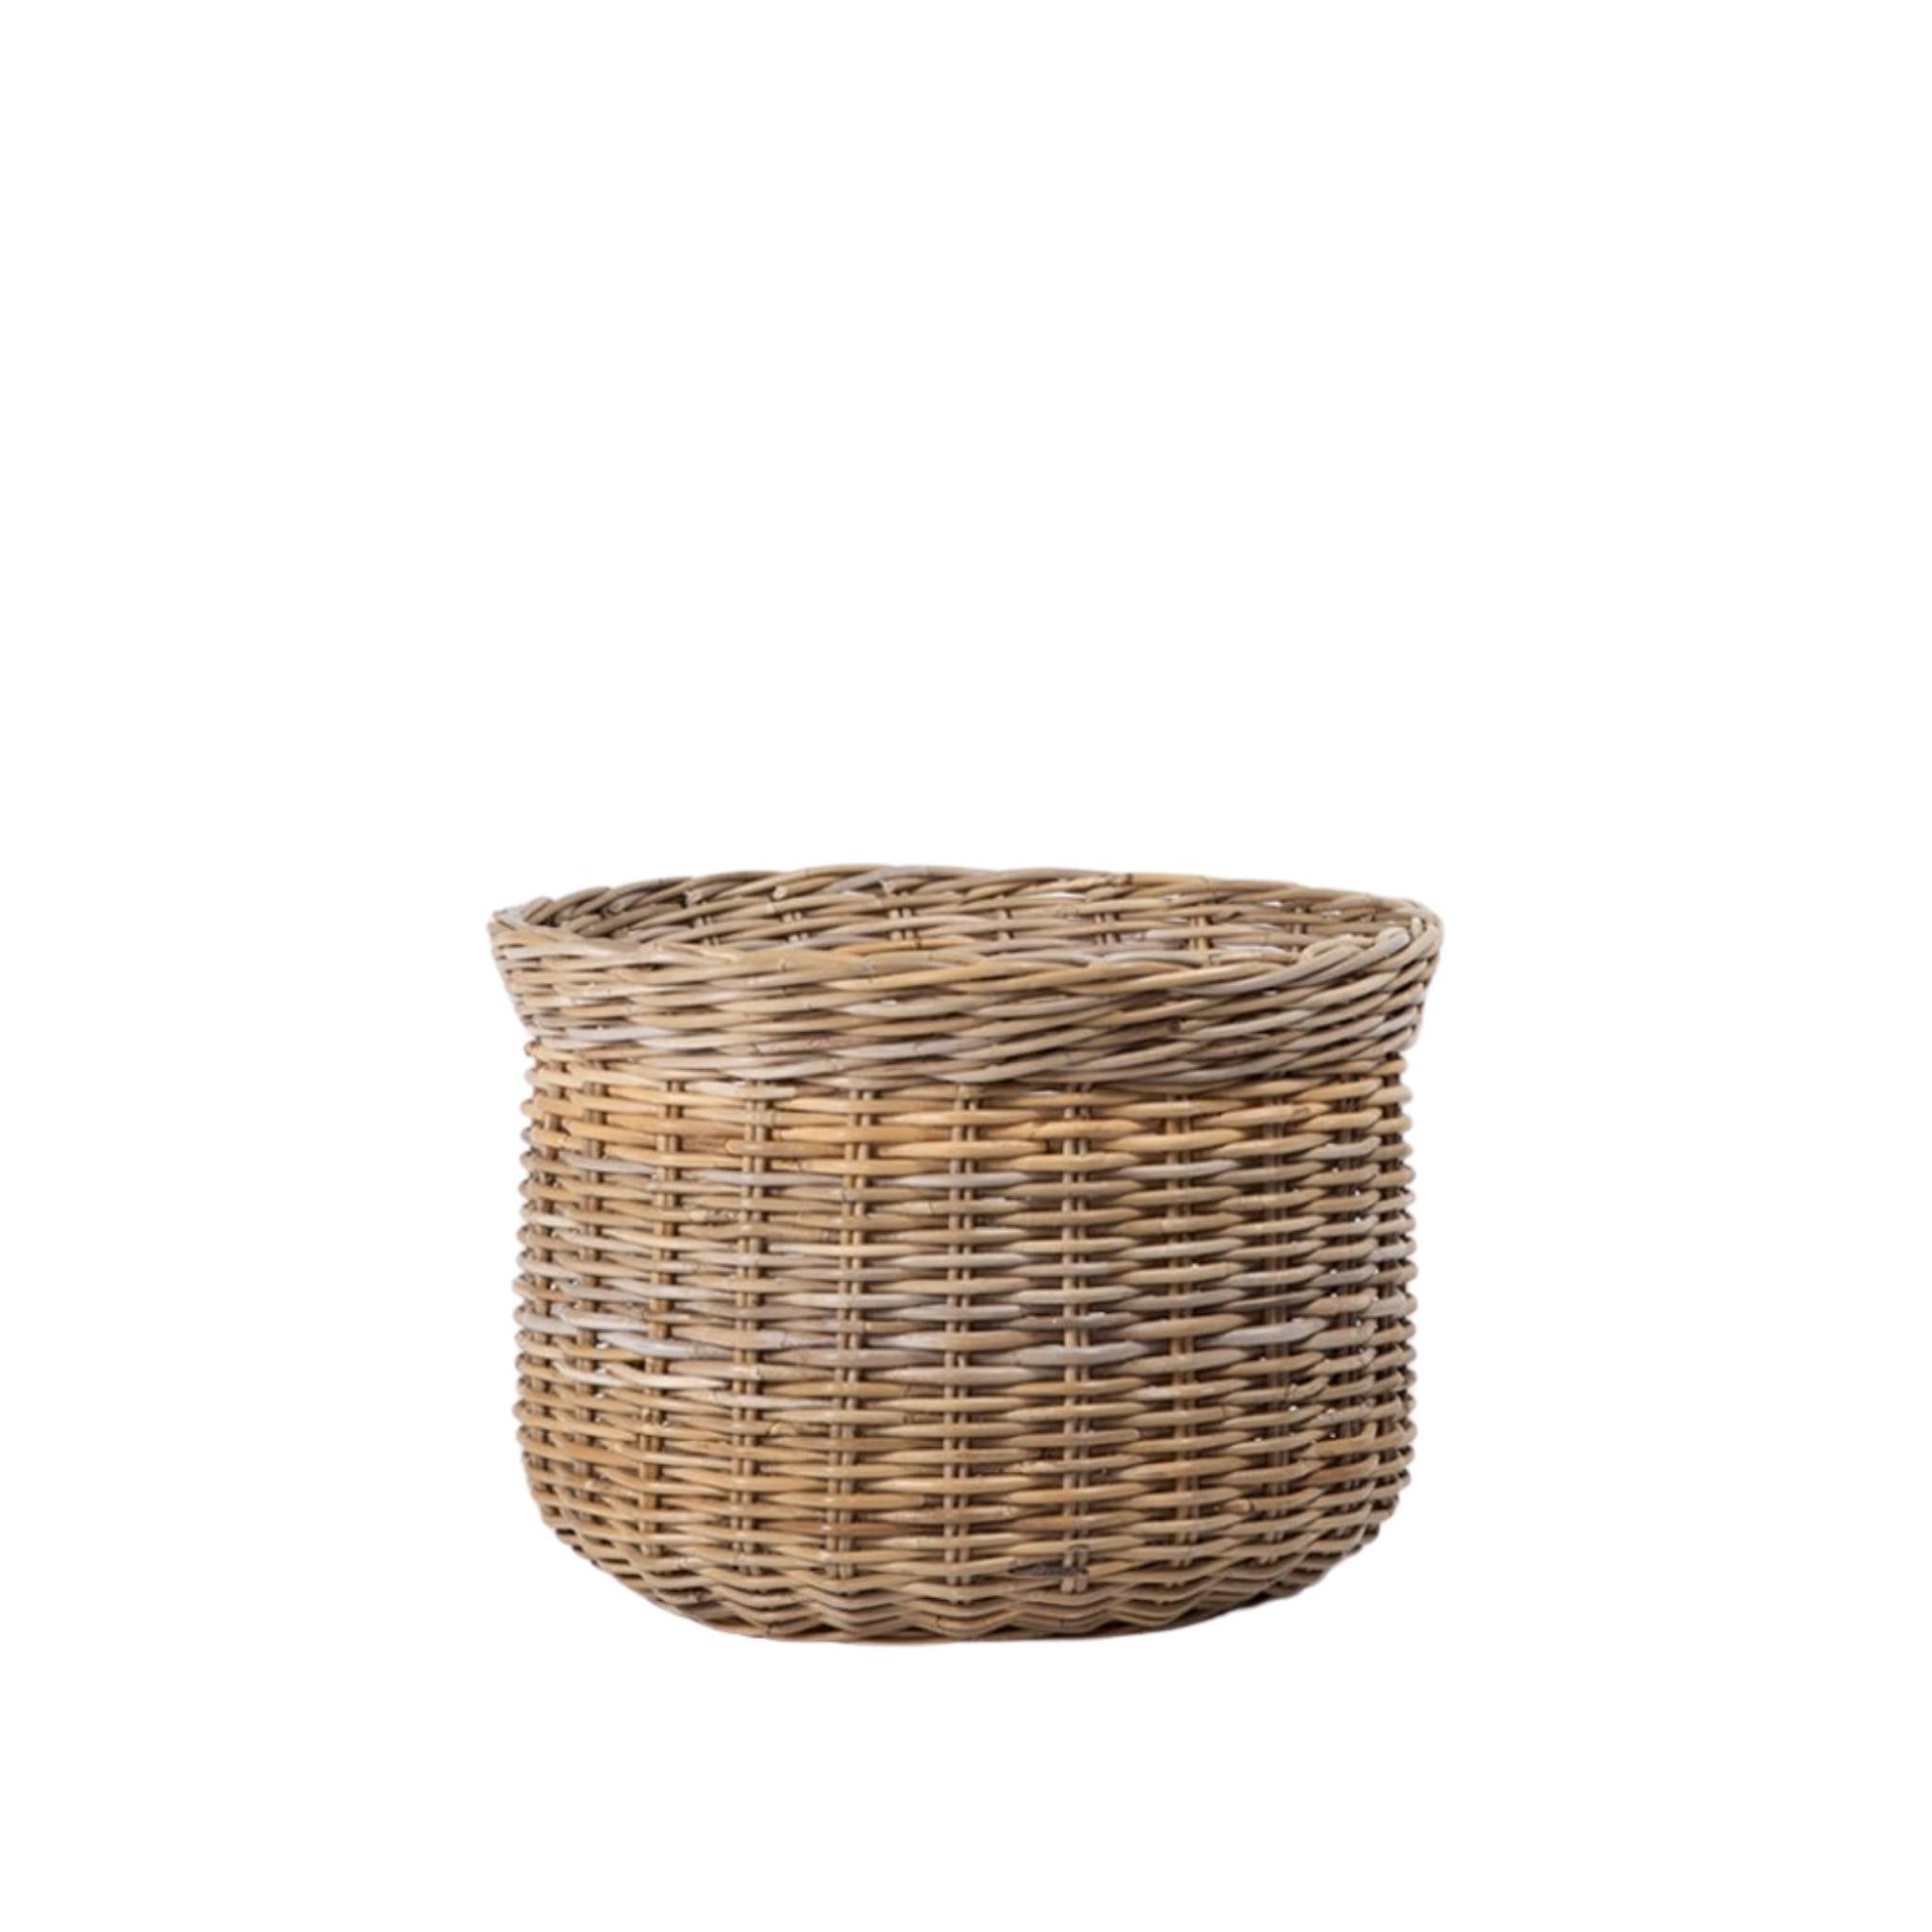 Kubu Rattan Round Basket - Small, Indonesia